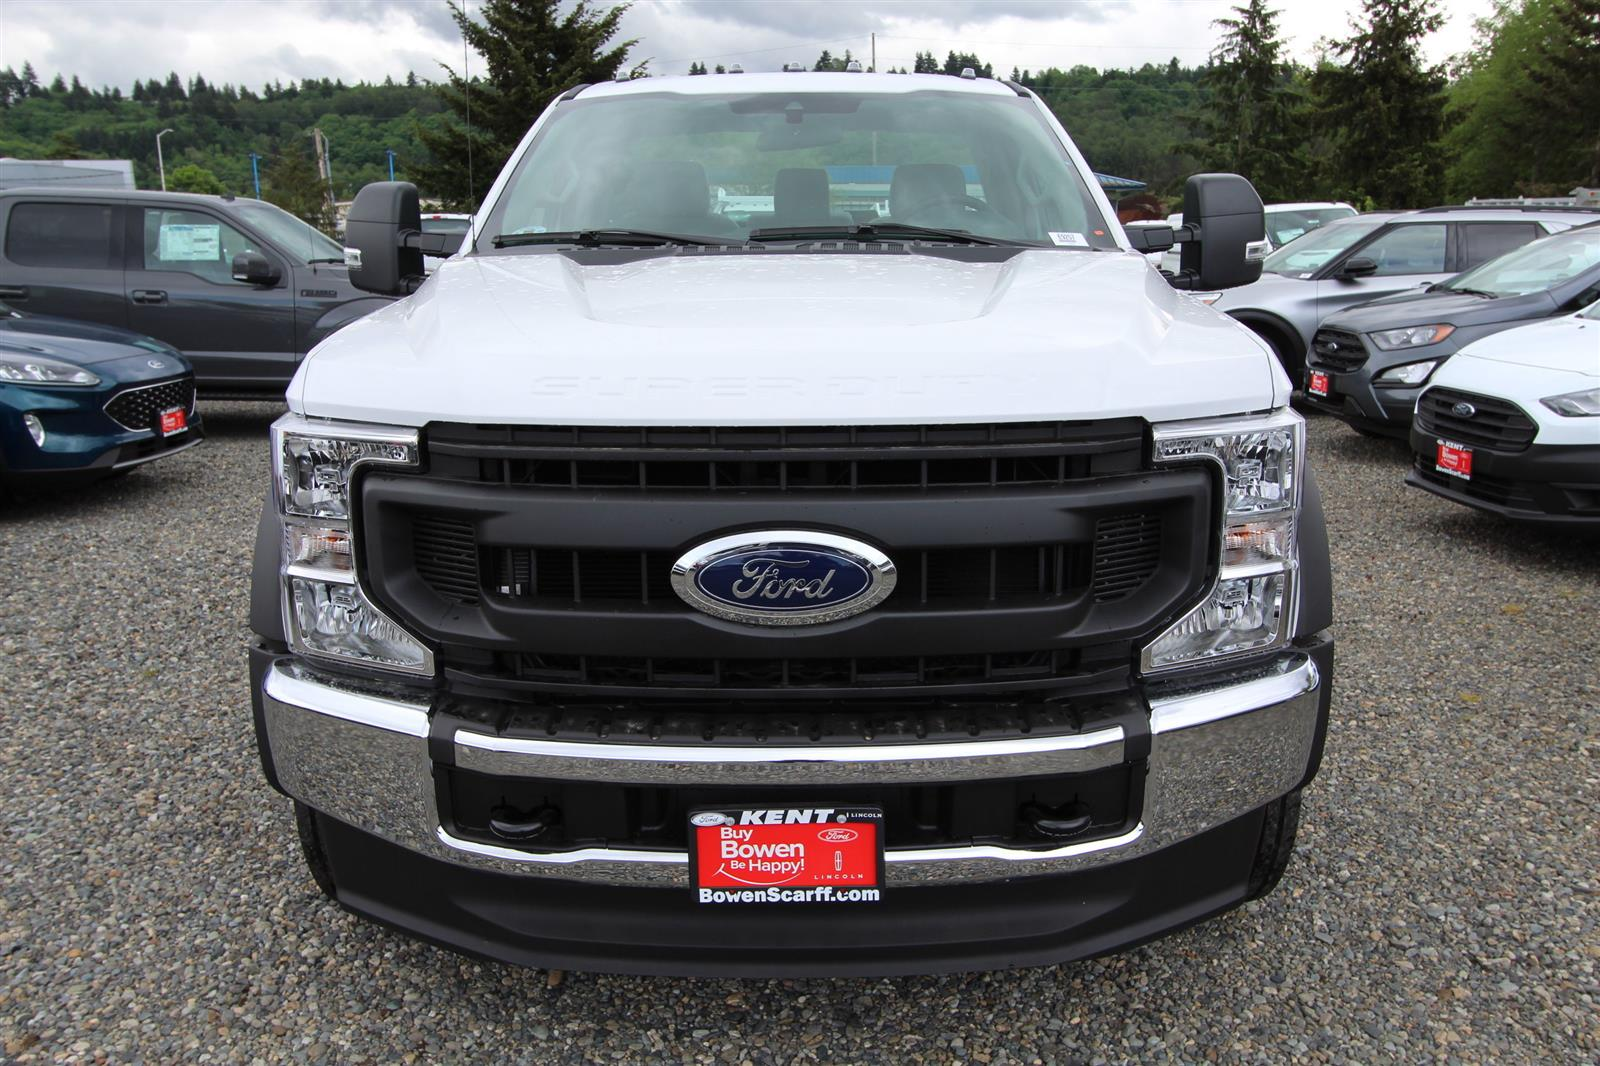 2020 Ford F-550 Regular Cab DRW 4x2, Cab Chassis #E9257 - photo 3